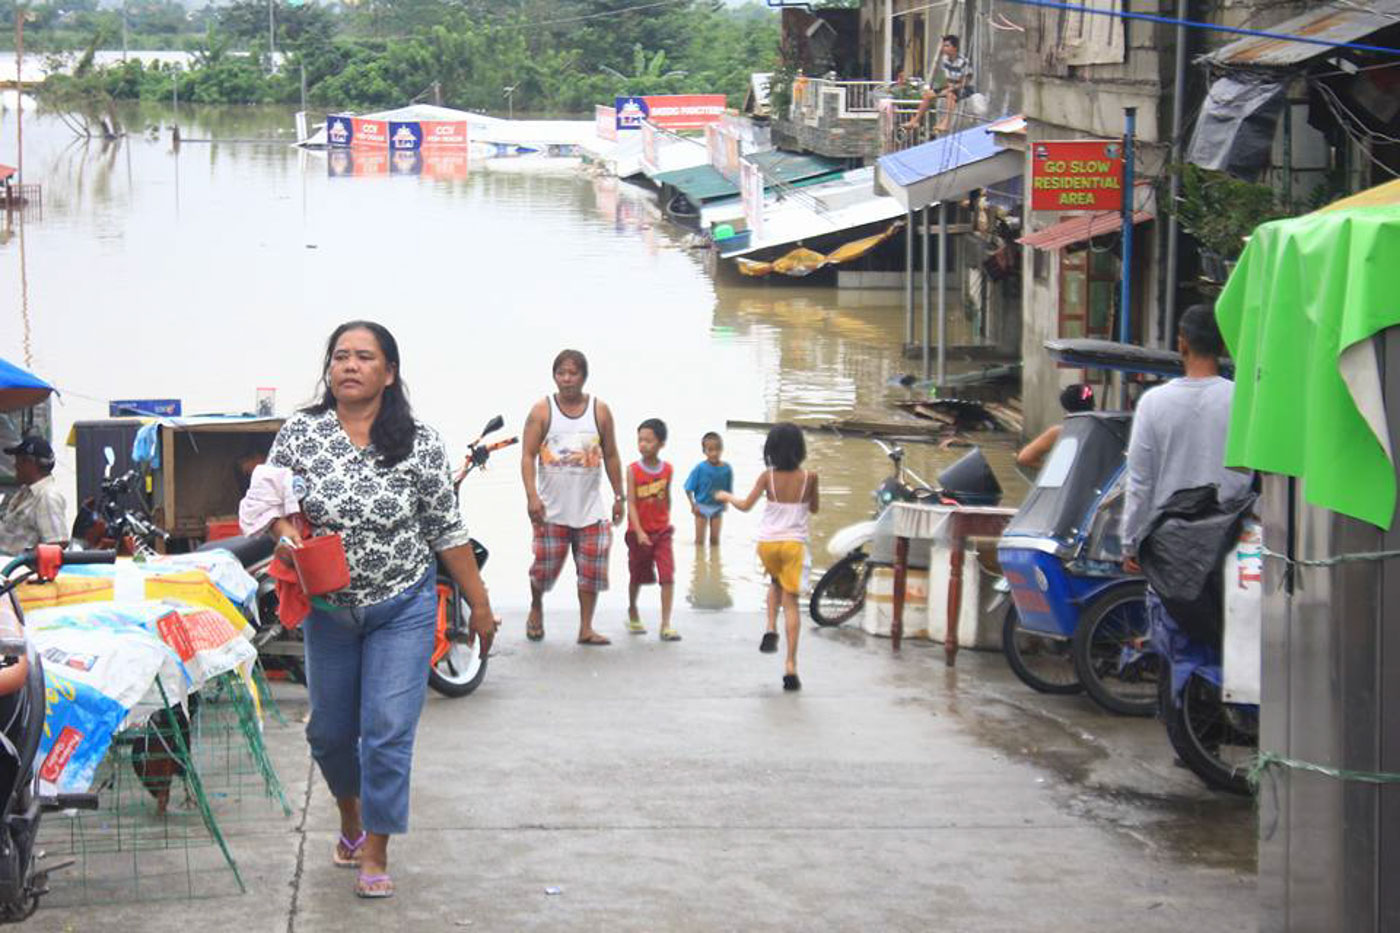 SUBMERGED. Houses in low-lying areas in Tuguegarao are flooded due to the swollen Pinacanauan River. Photo courtesy of Cagayan PIO